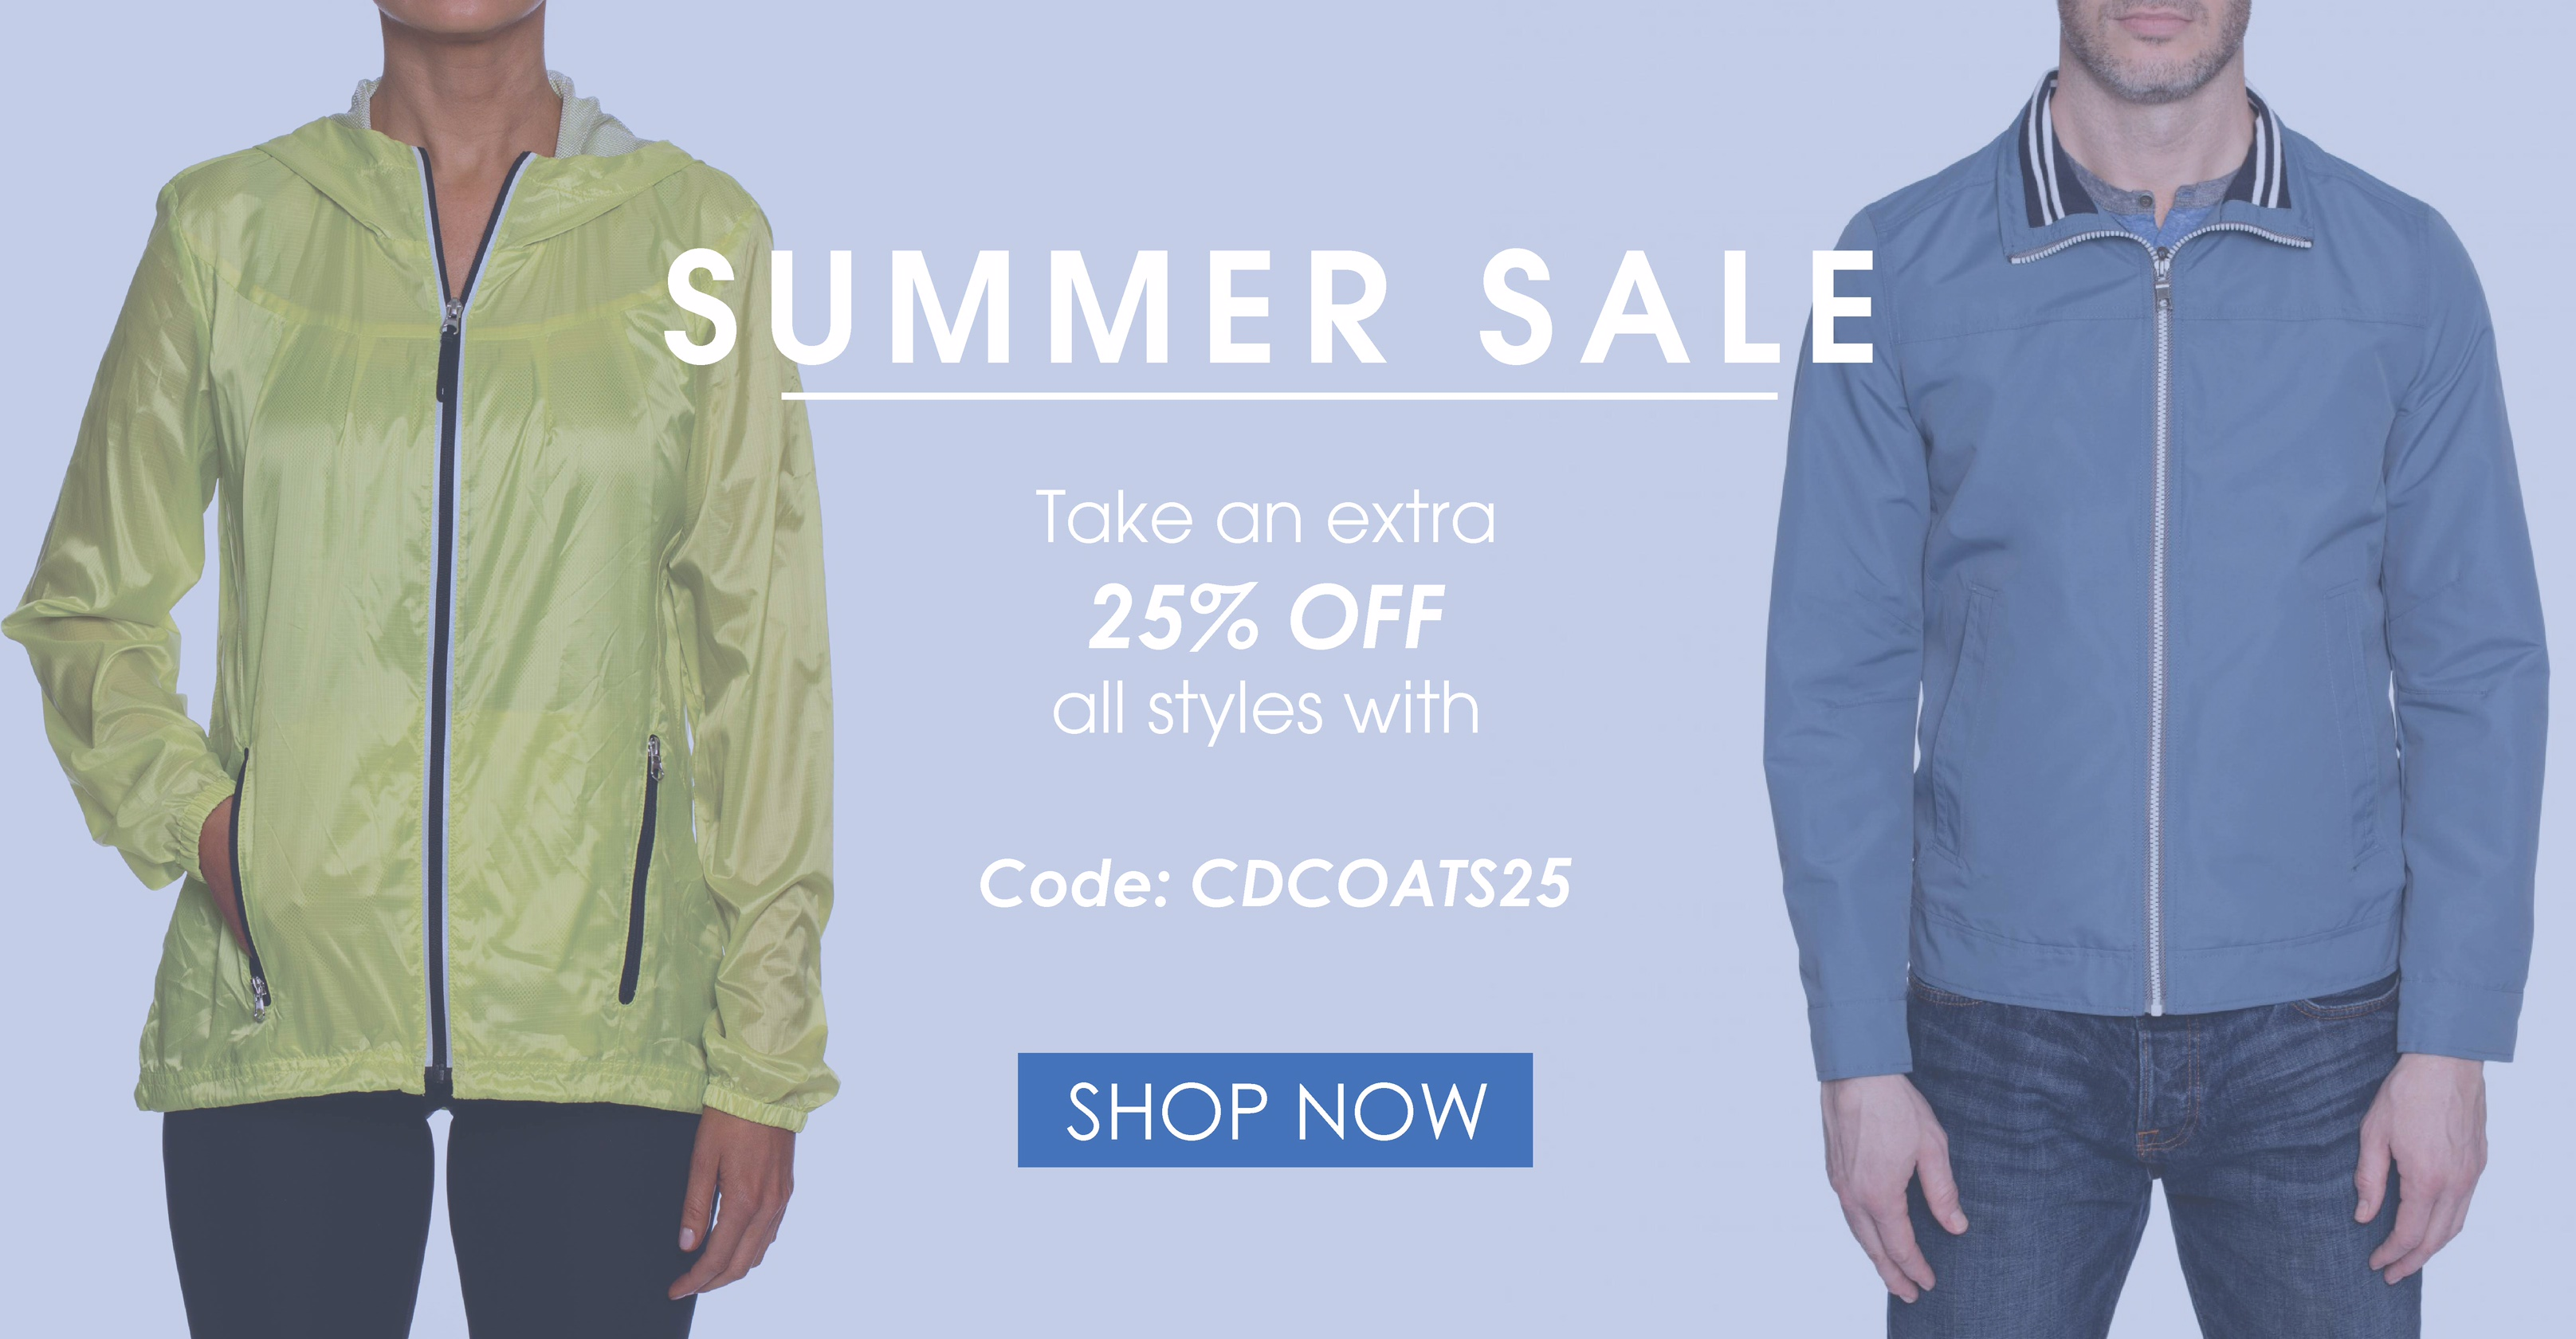 SHOP SUMMER SALE